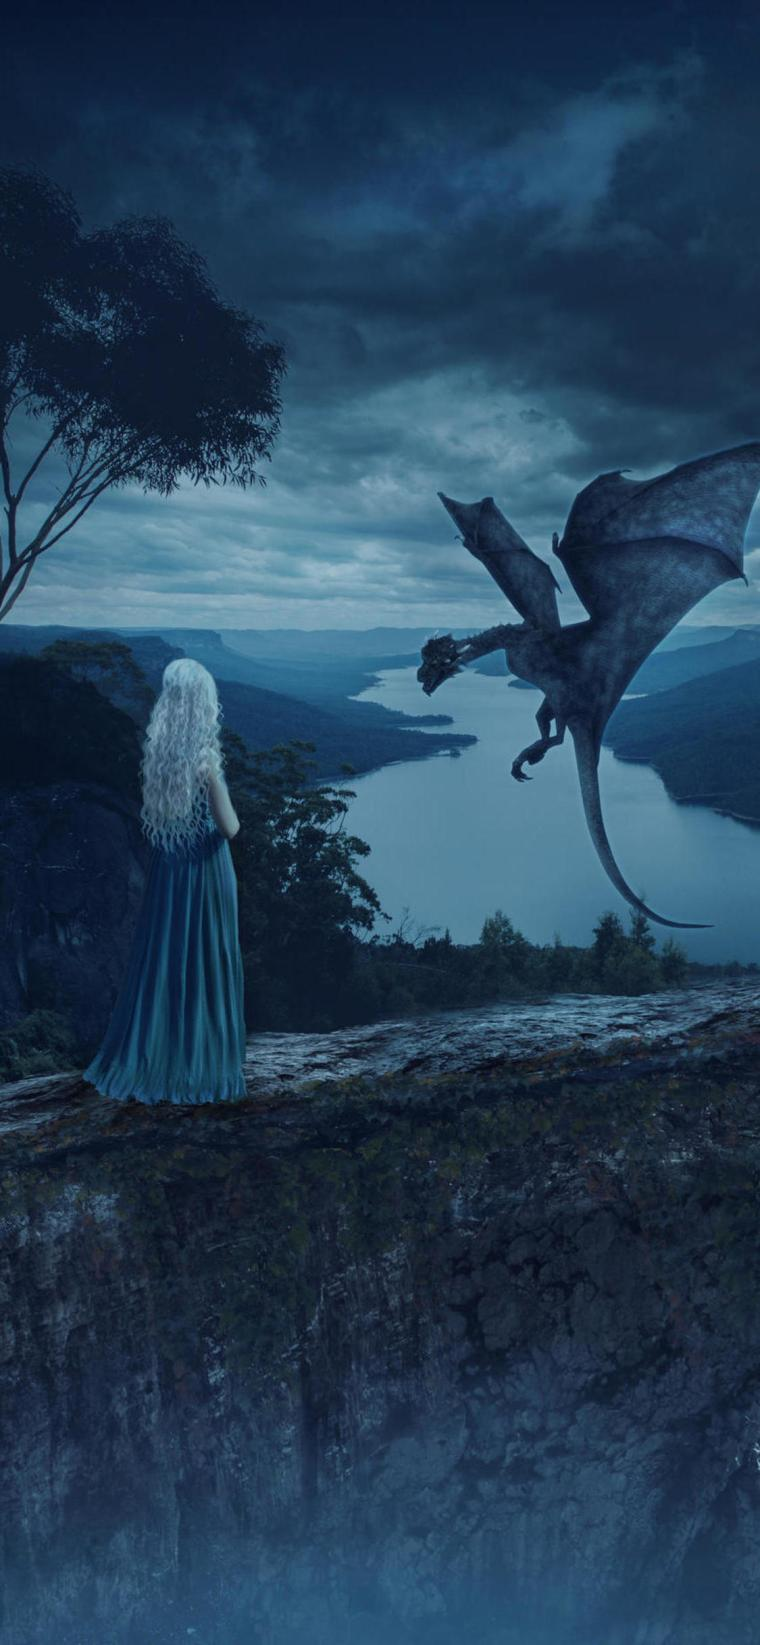 dragons-mother-game-of-thrones-6y-1125x2436 iPhone game of thrones wallpaper